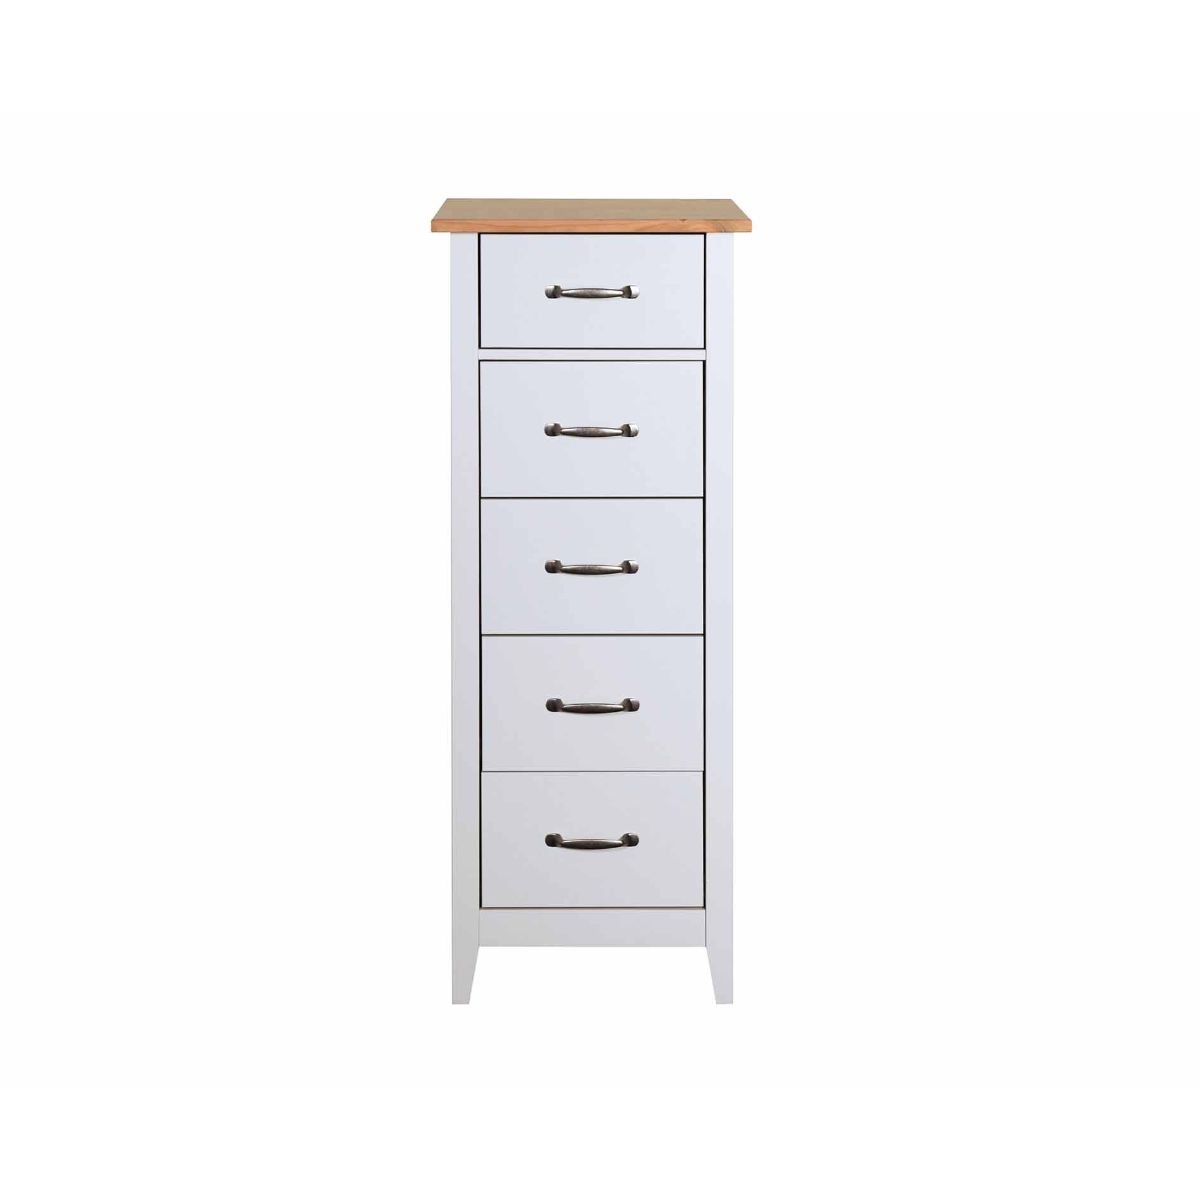 Steens Norfolk 5 Drawer Narrow Chest Grey and Pine, Grey / Pine